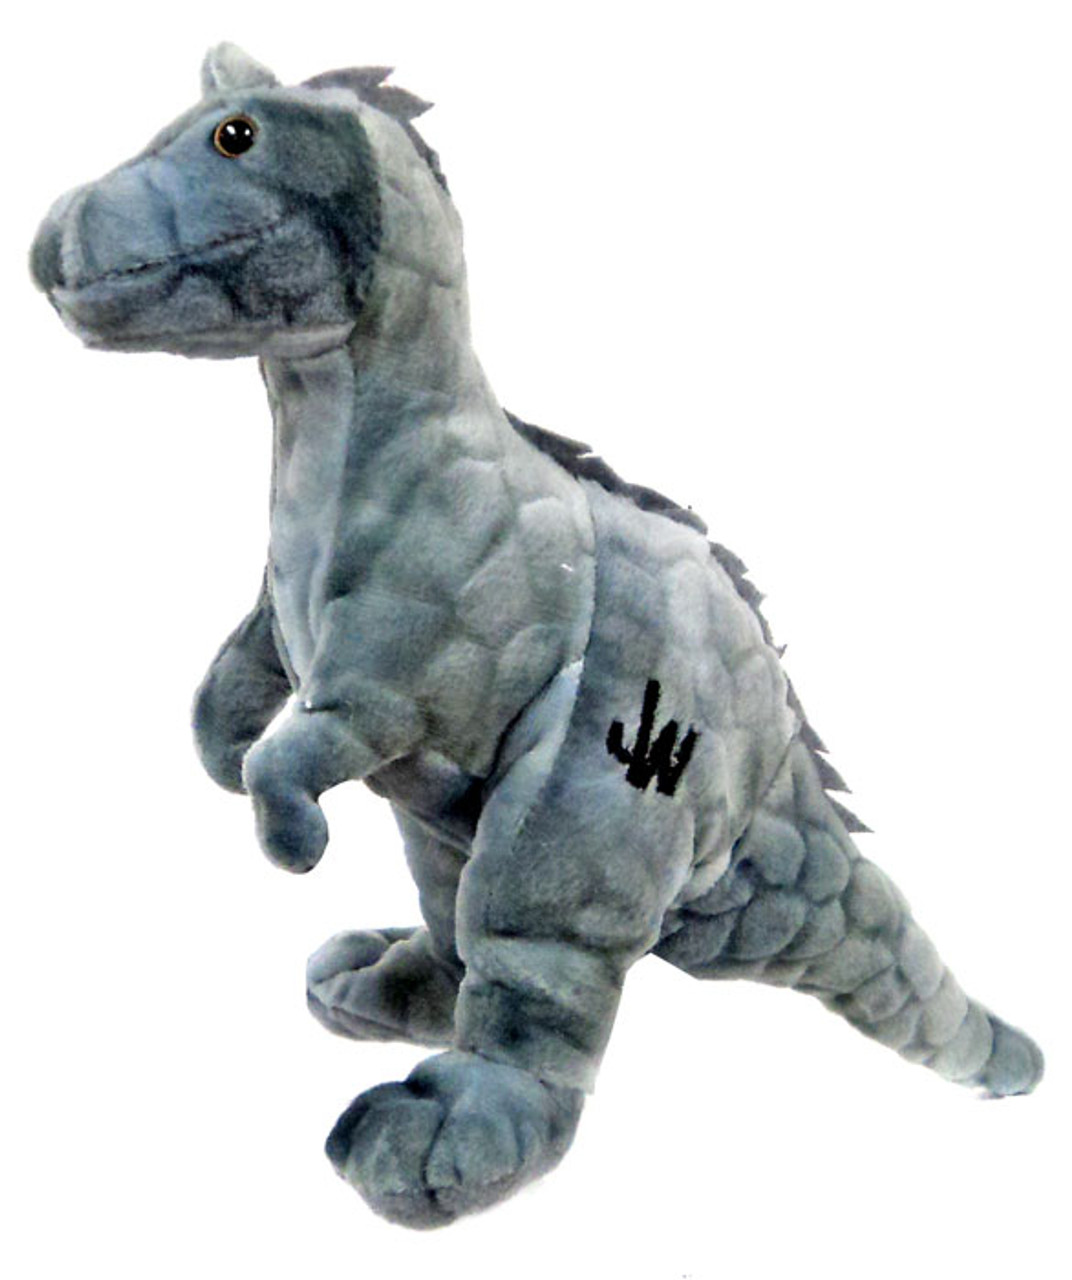 Aurora Monkey Stuffed Animal, Jurassic World Indominus Rex 7 Plush Toy Factory Toywiz